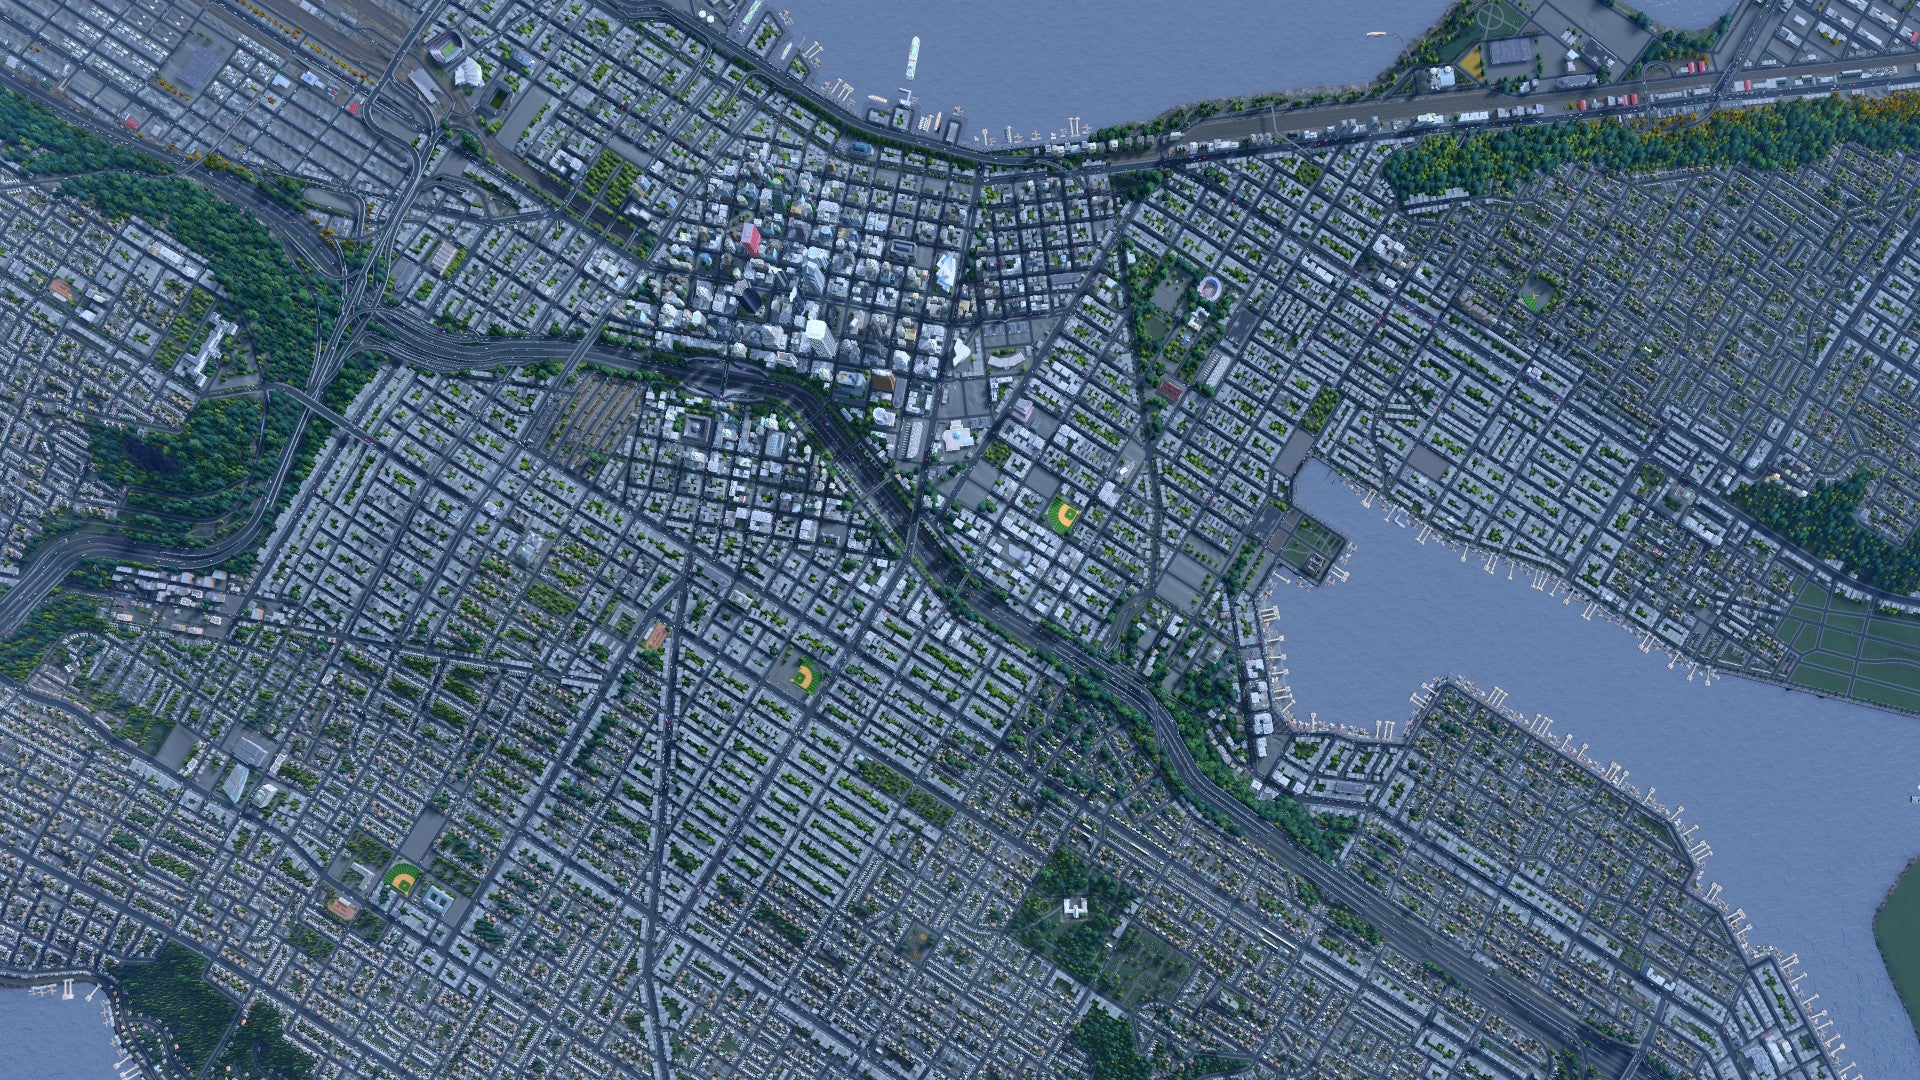 Seattle Recreated Almost Perfectly In Cities Skylines